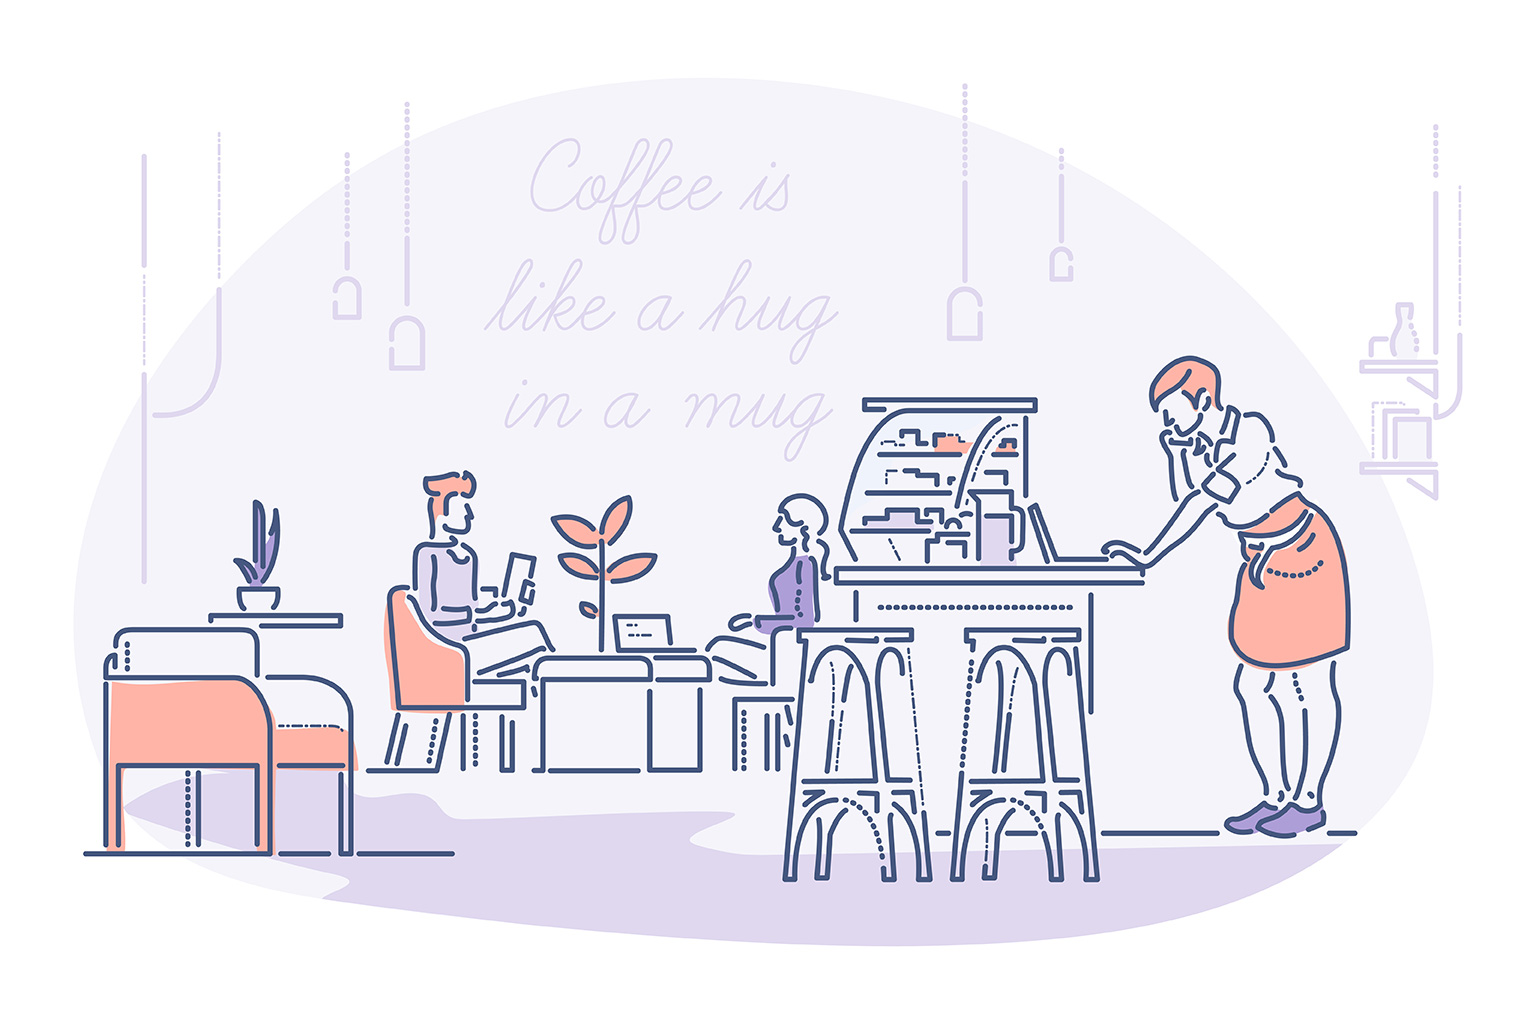 Coffee shop startup costs - hero illustration of coffee shop owner behind counter and two seated customers